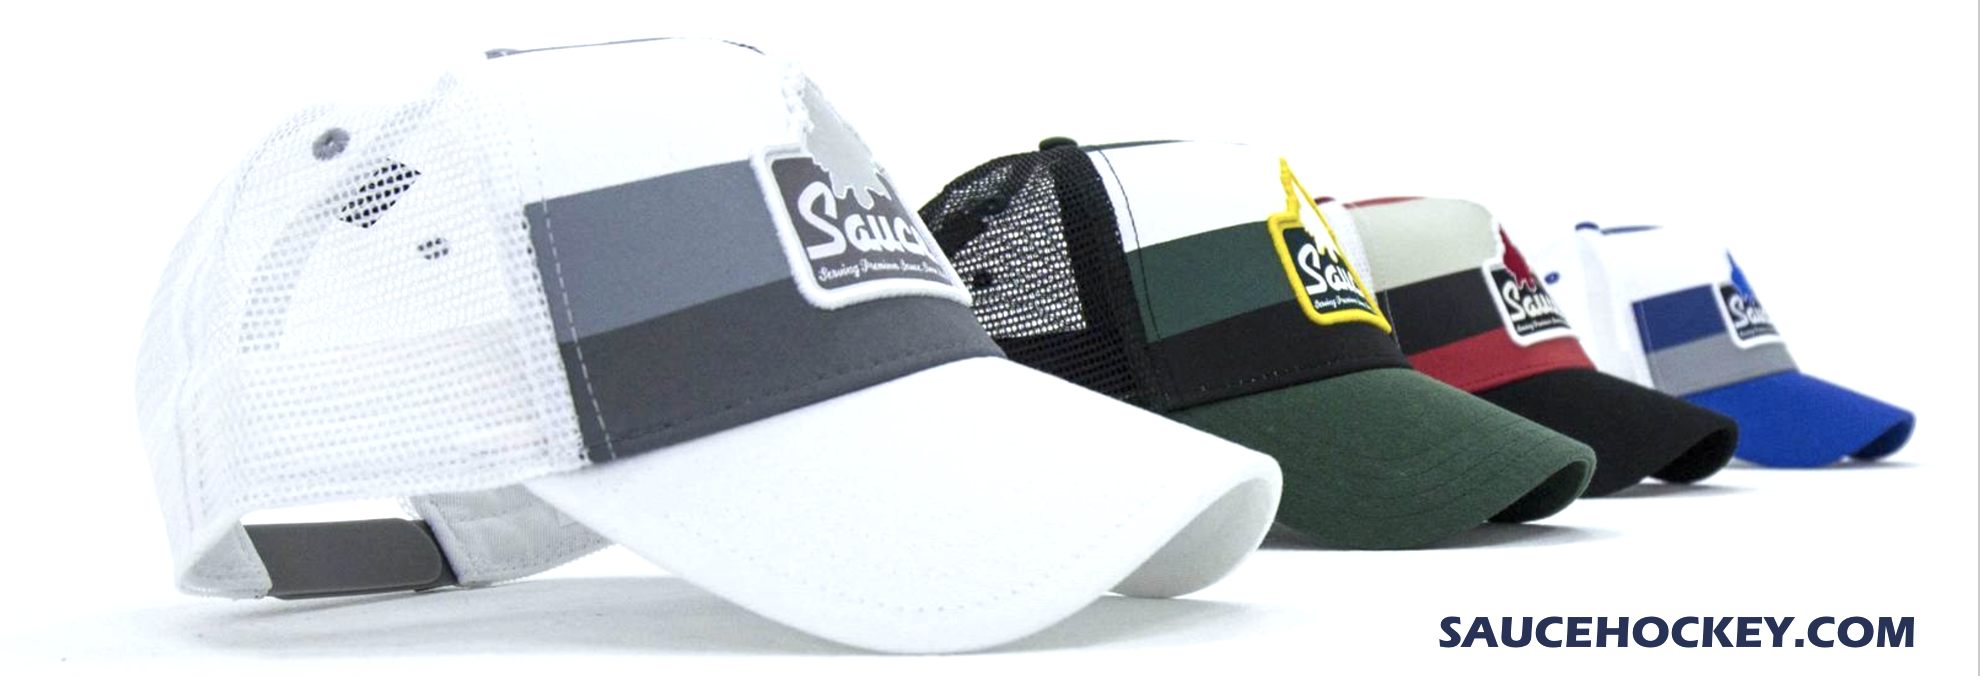 Sauce Hockey - Official Lifestyle Clothing Brand of CJR